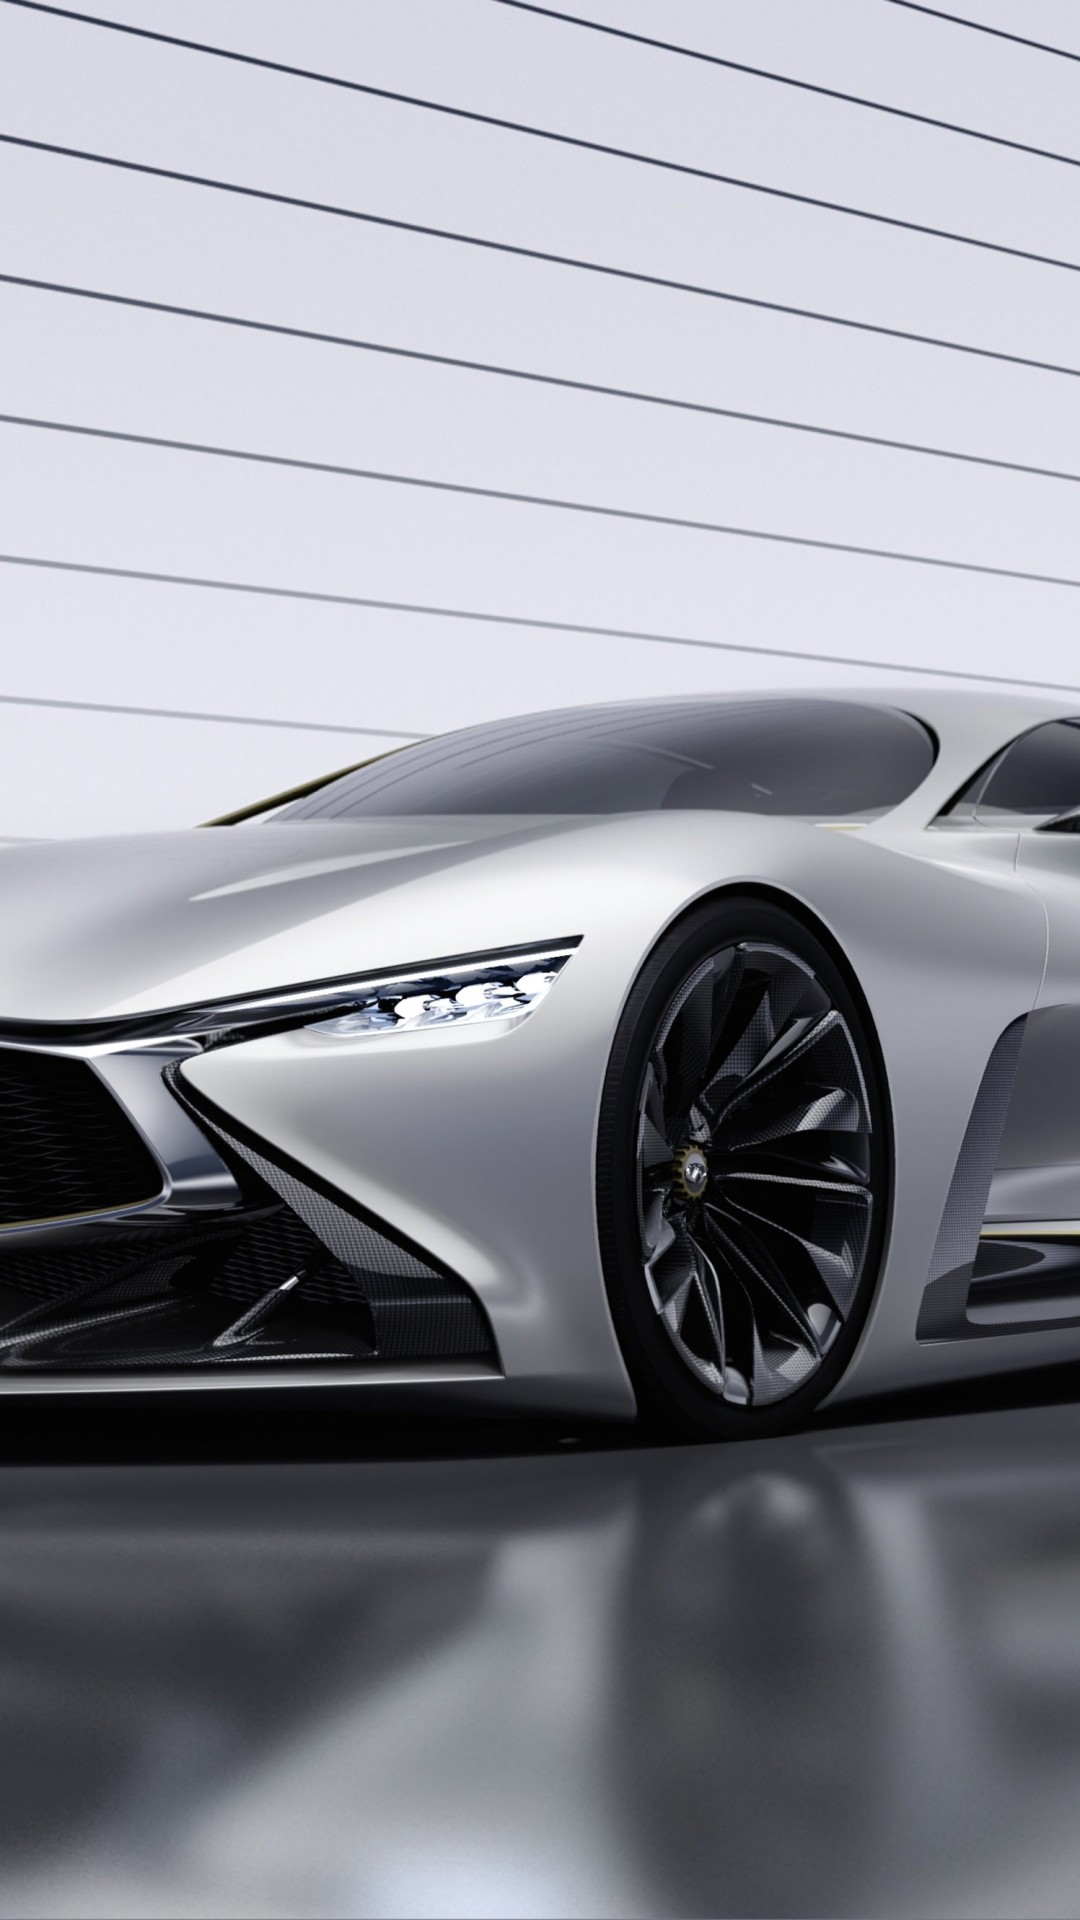 Infiniti Vision GT Concept Wallpaper for SAMSUNG Galaxy S5